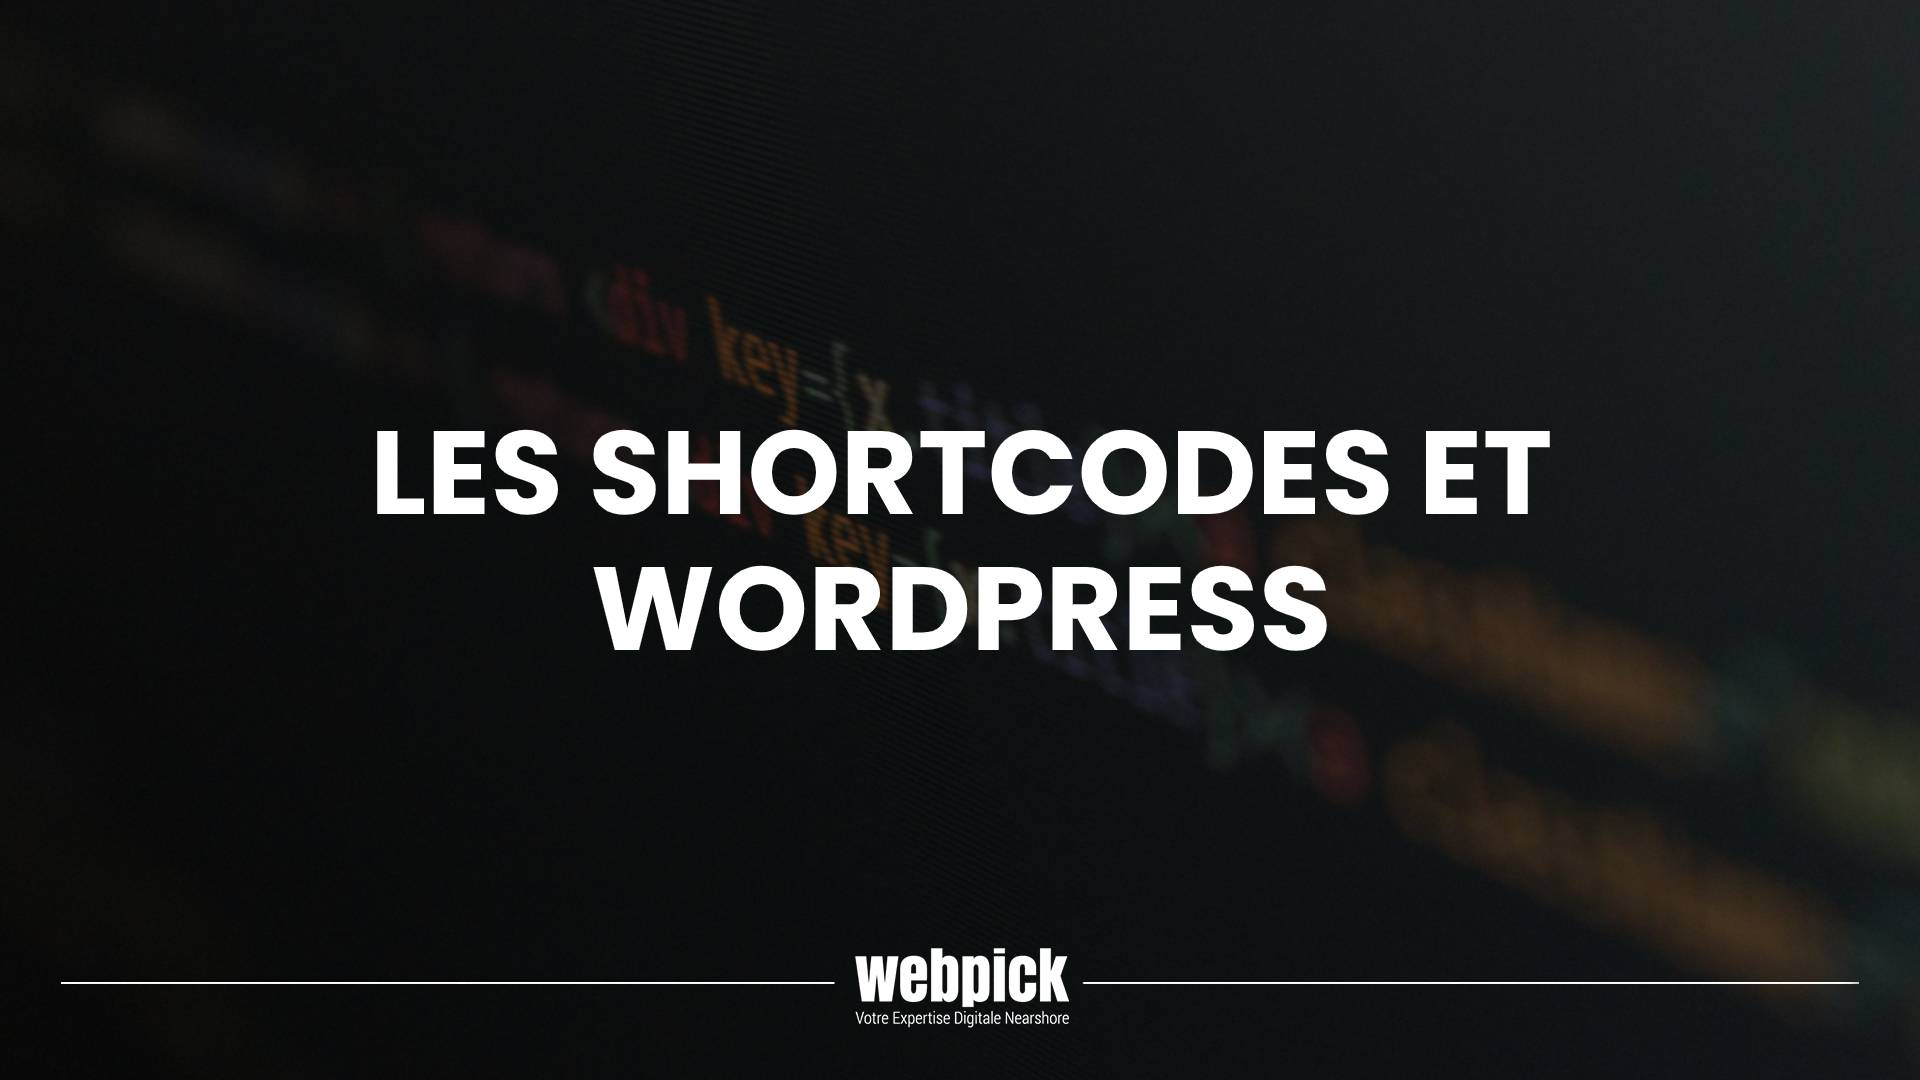 Les Shortcodes et WordPress